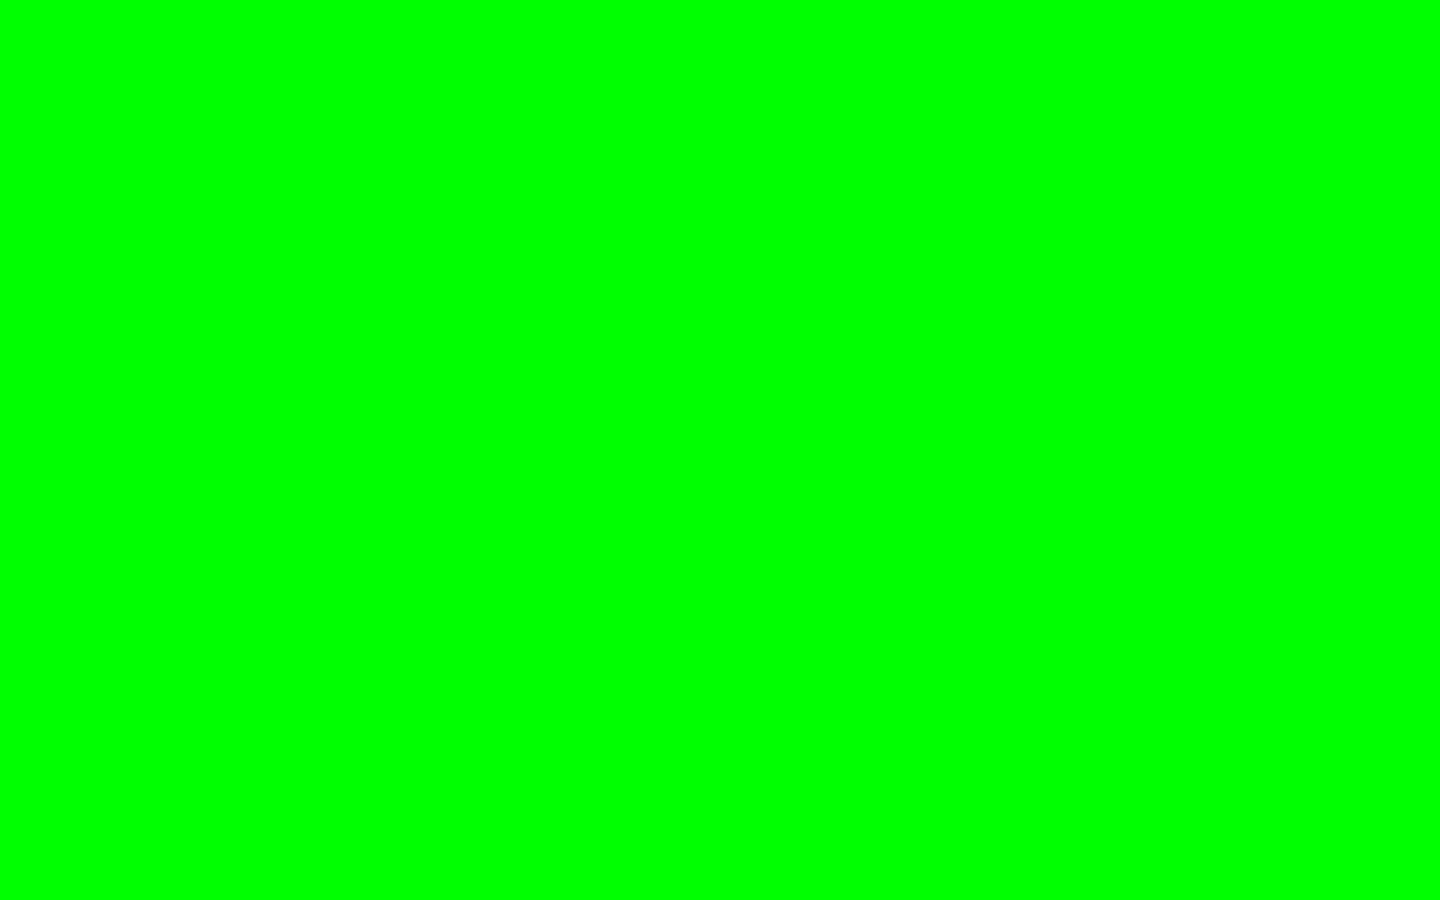 1440x900 Lime Web Green Solid Color Background